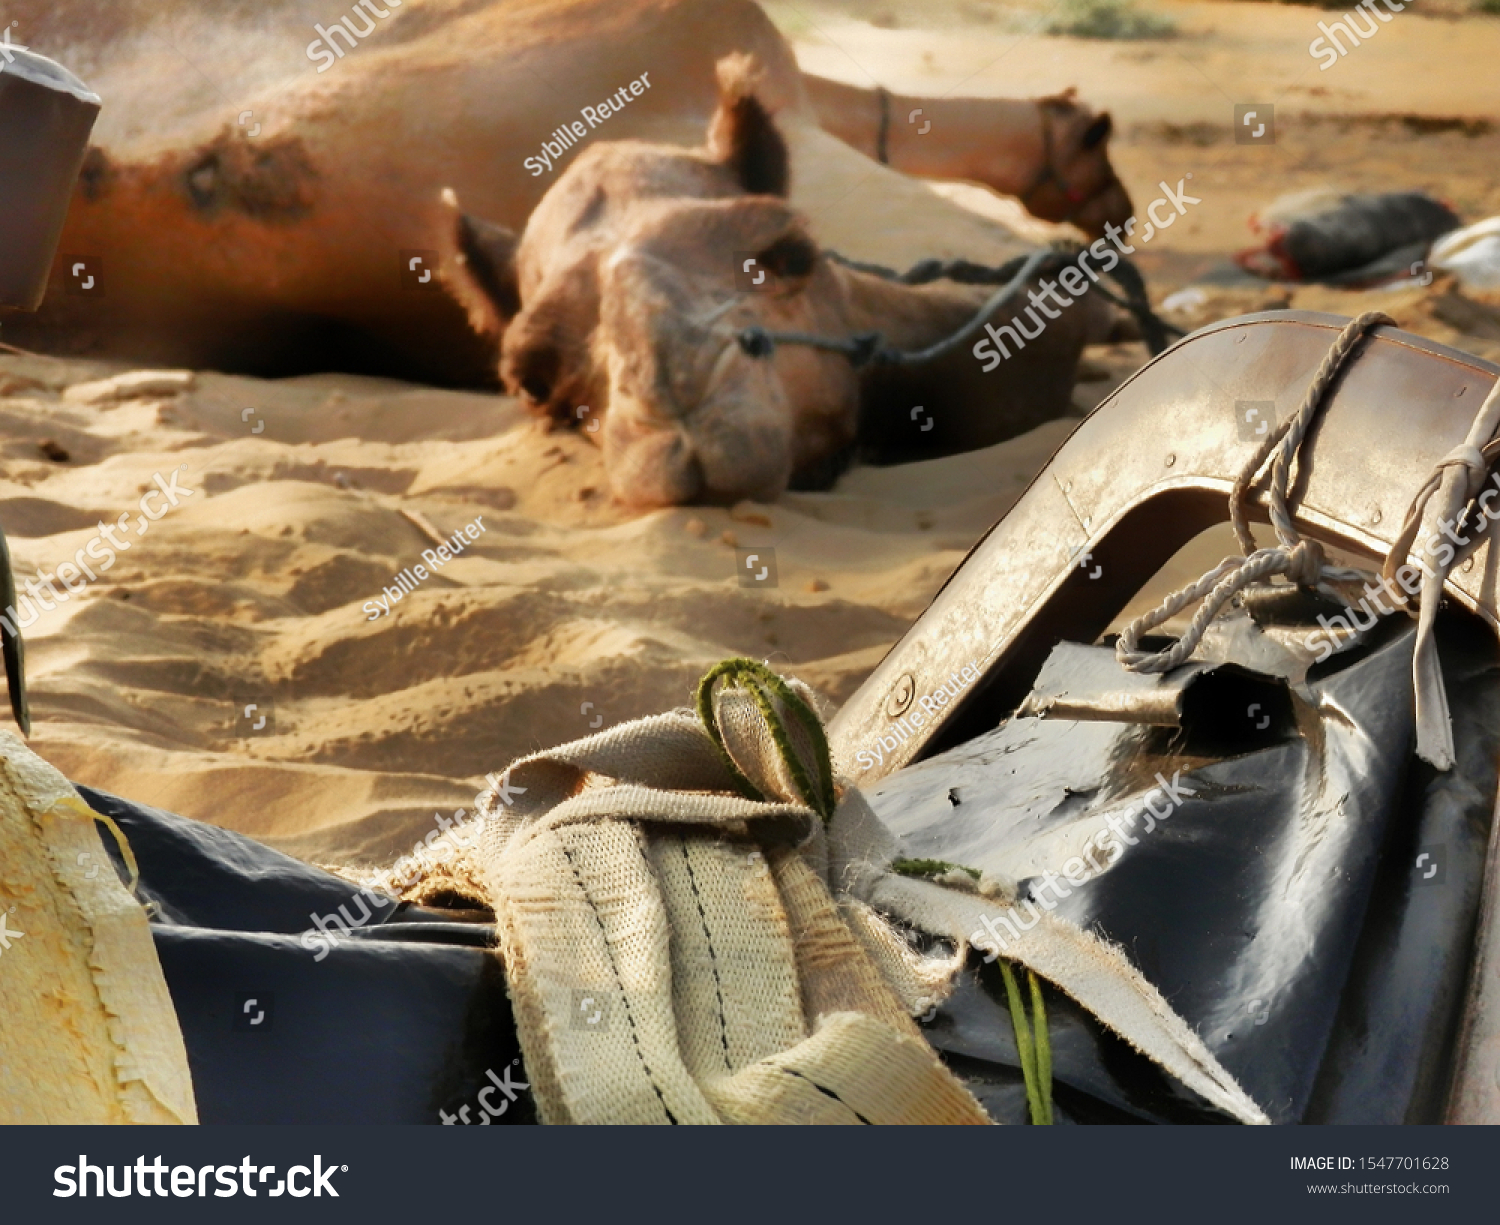 stock-photo-a-camel-s-saddle-in-the-fore